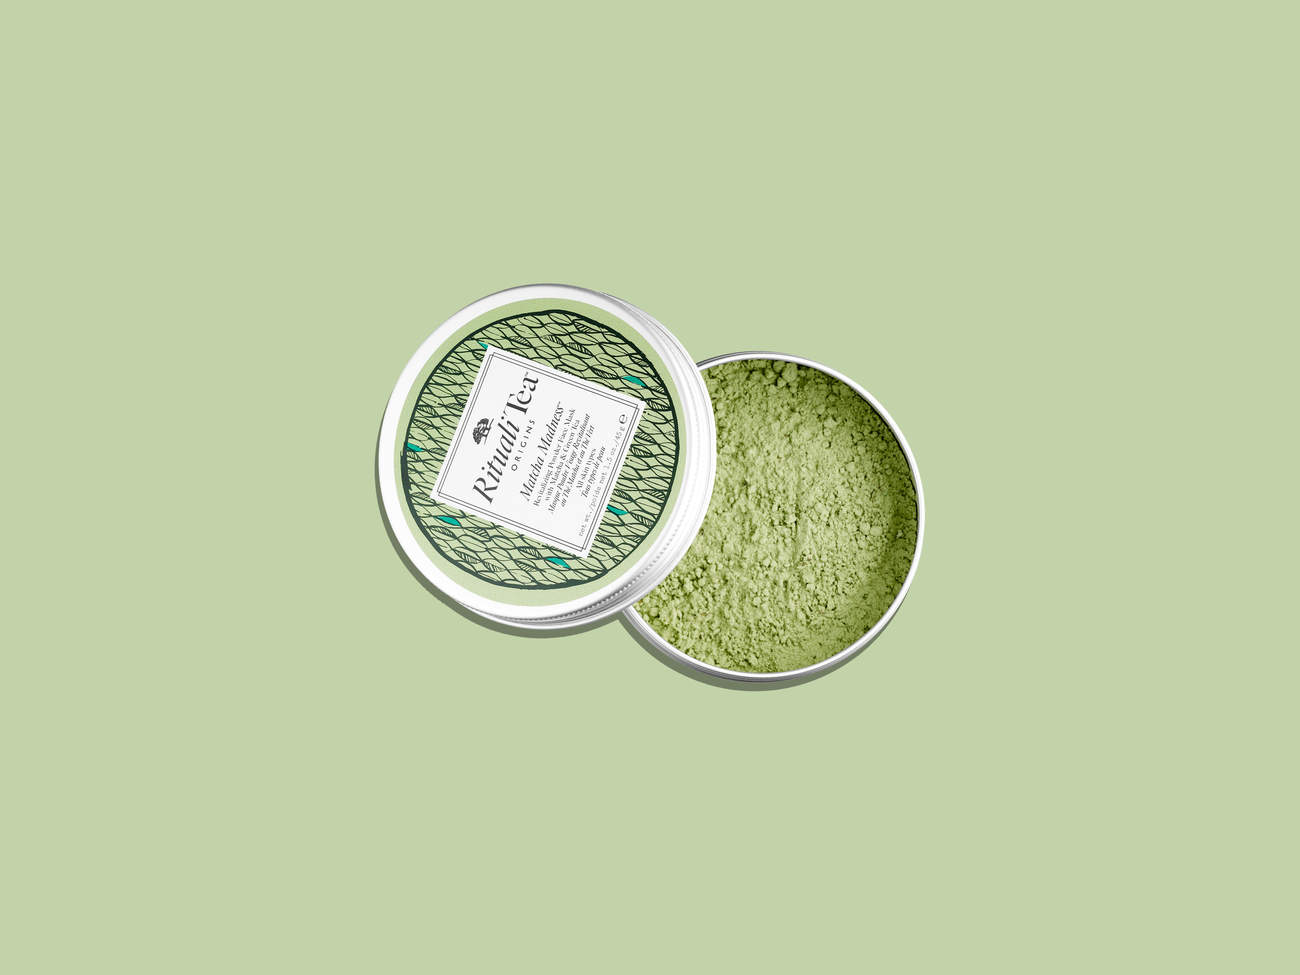 green-tea-beauty-products-list